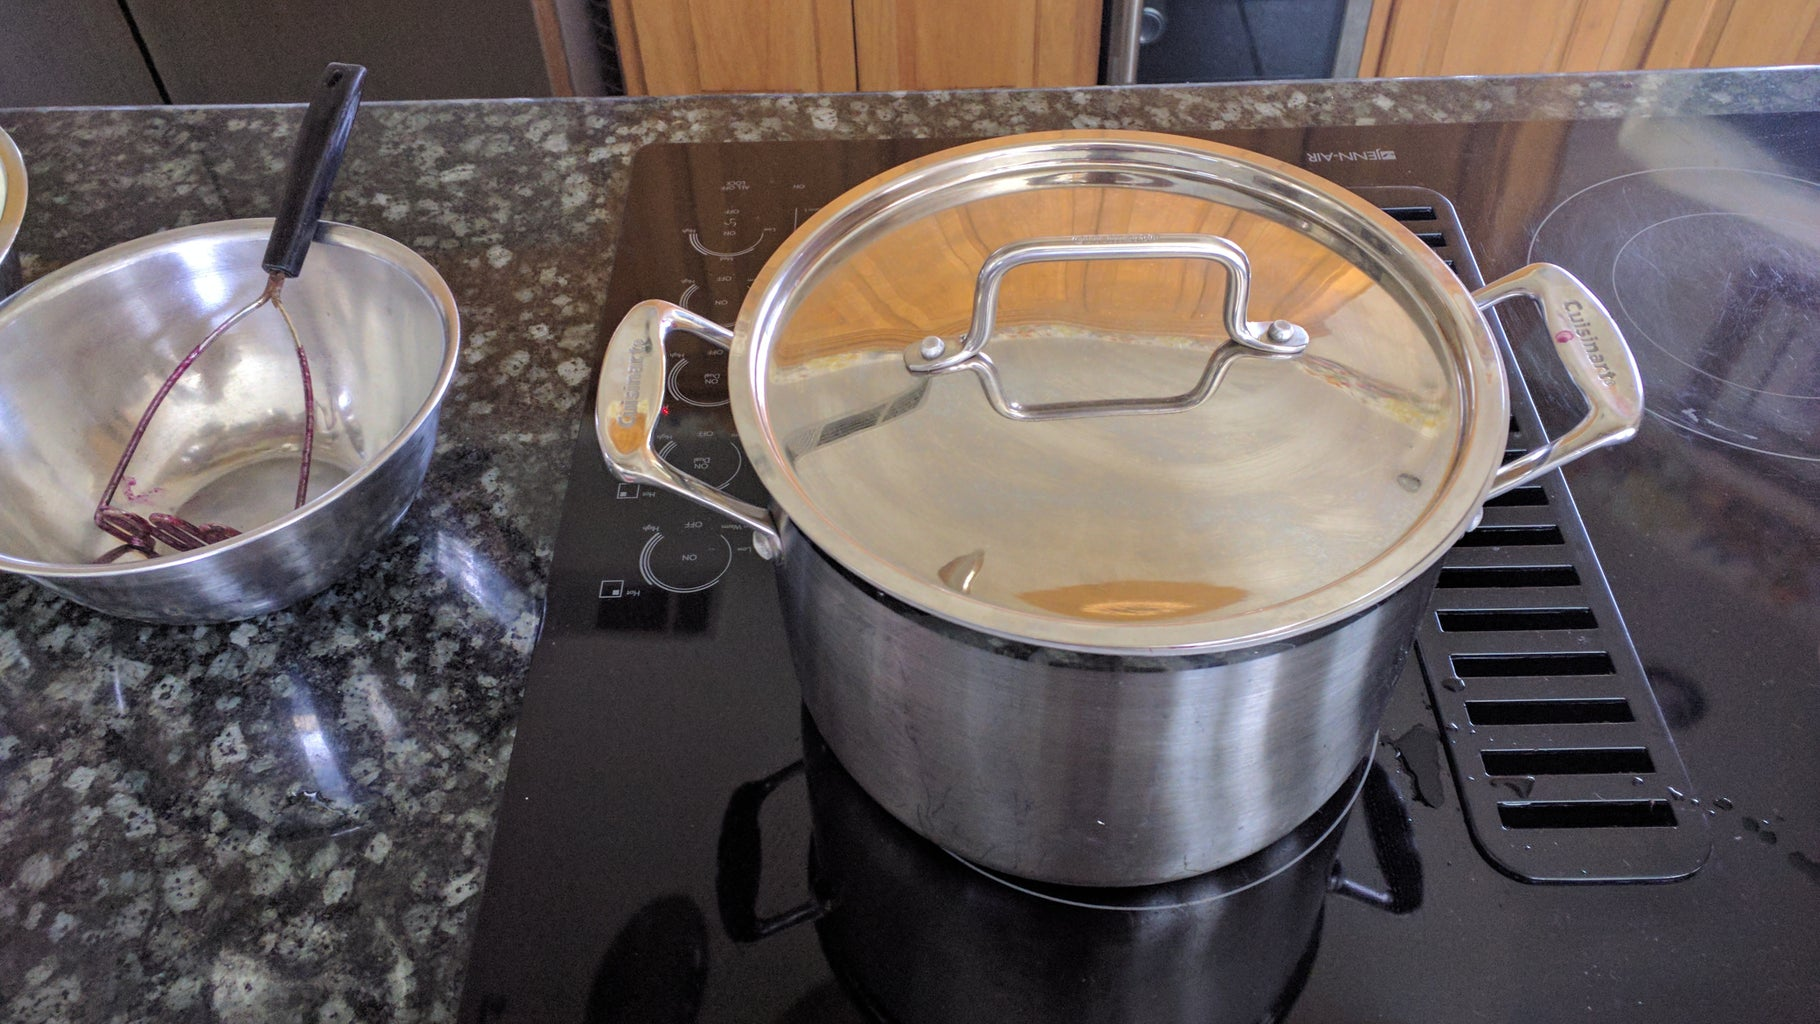 Boiling and Mashing the Grapes